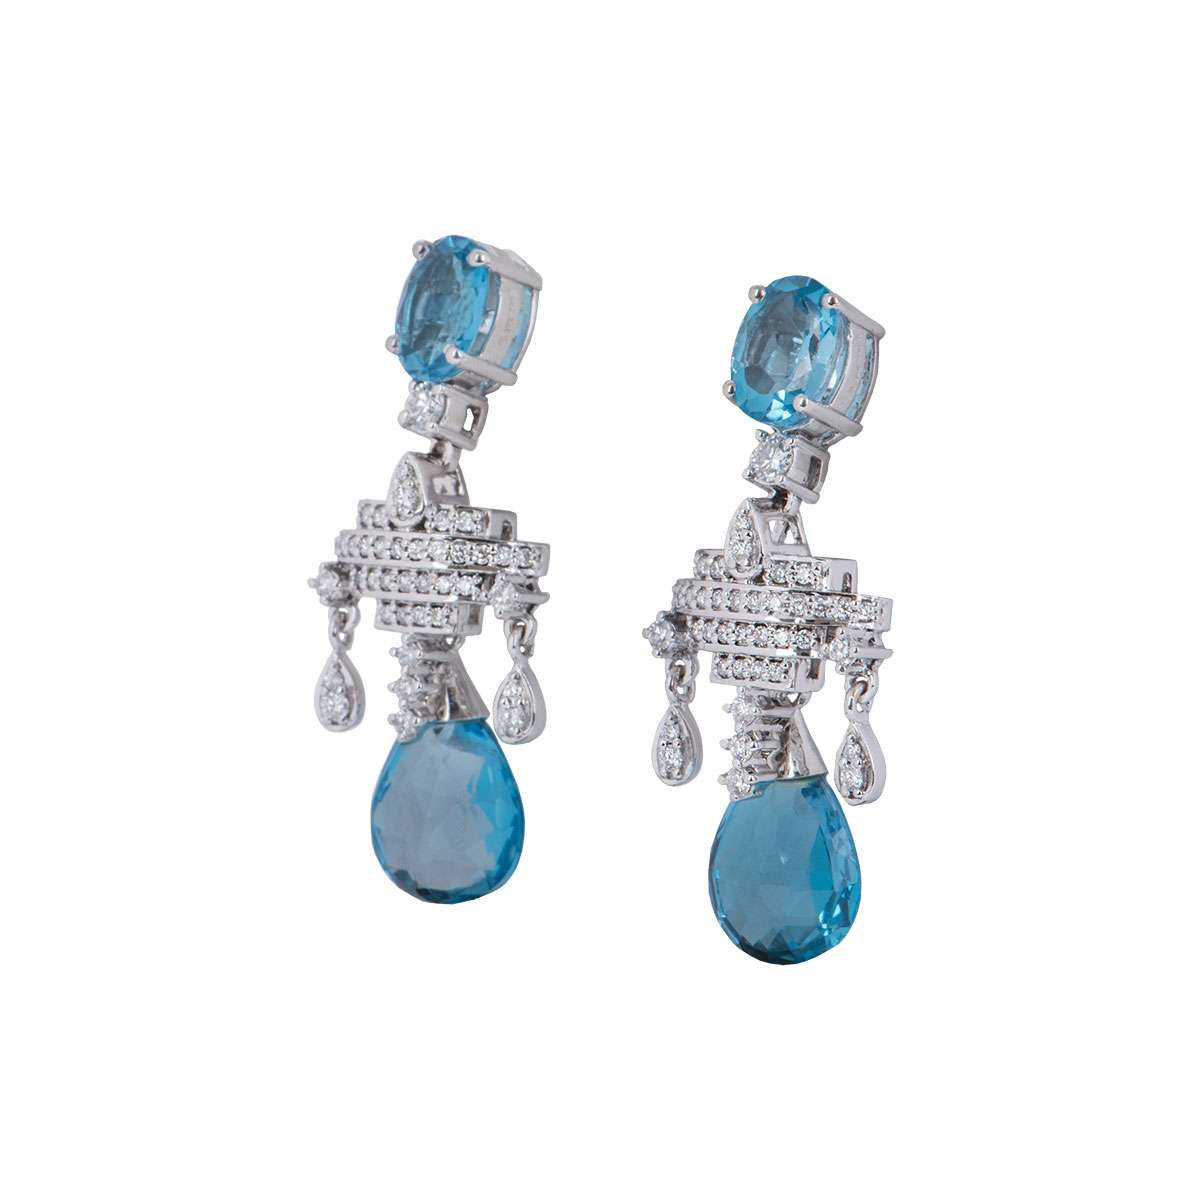 White Gold Diamond and Aquamarine Earrings